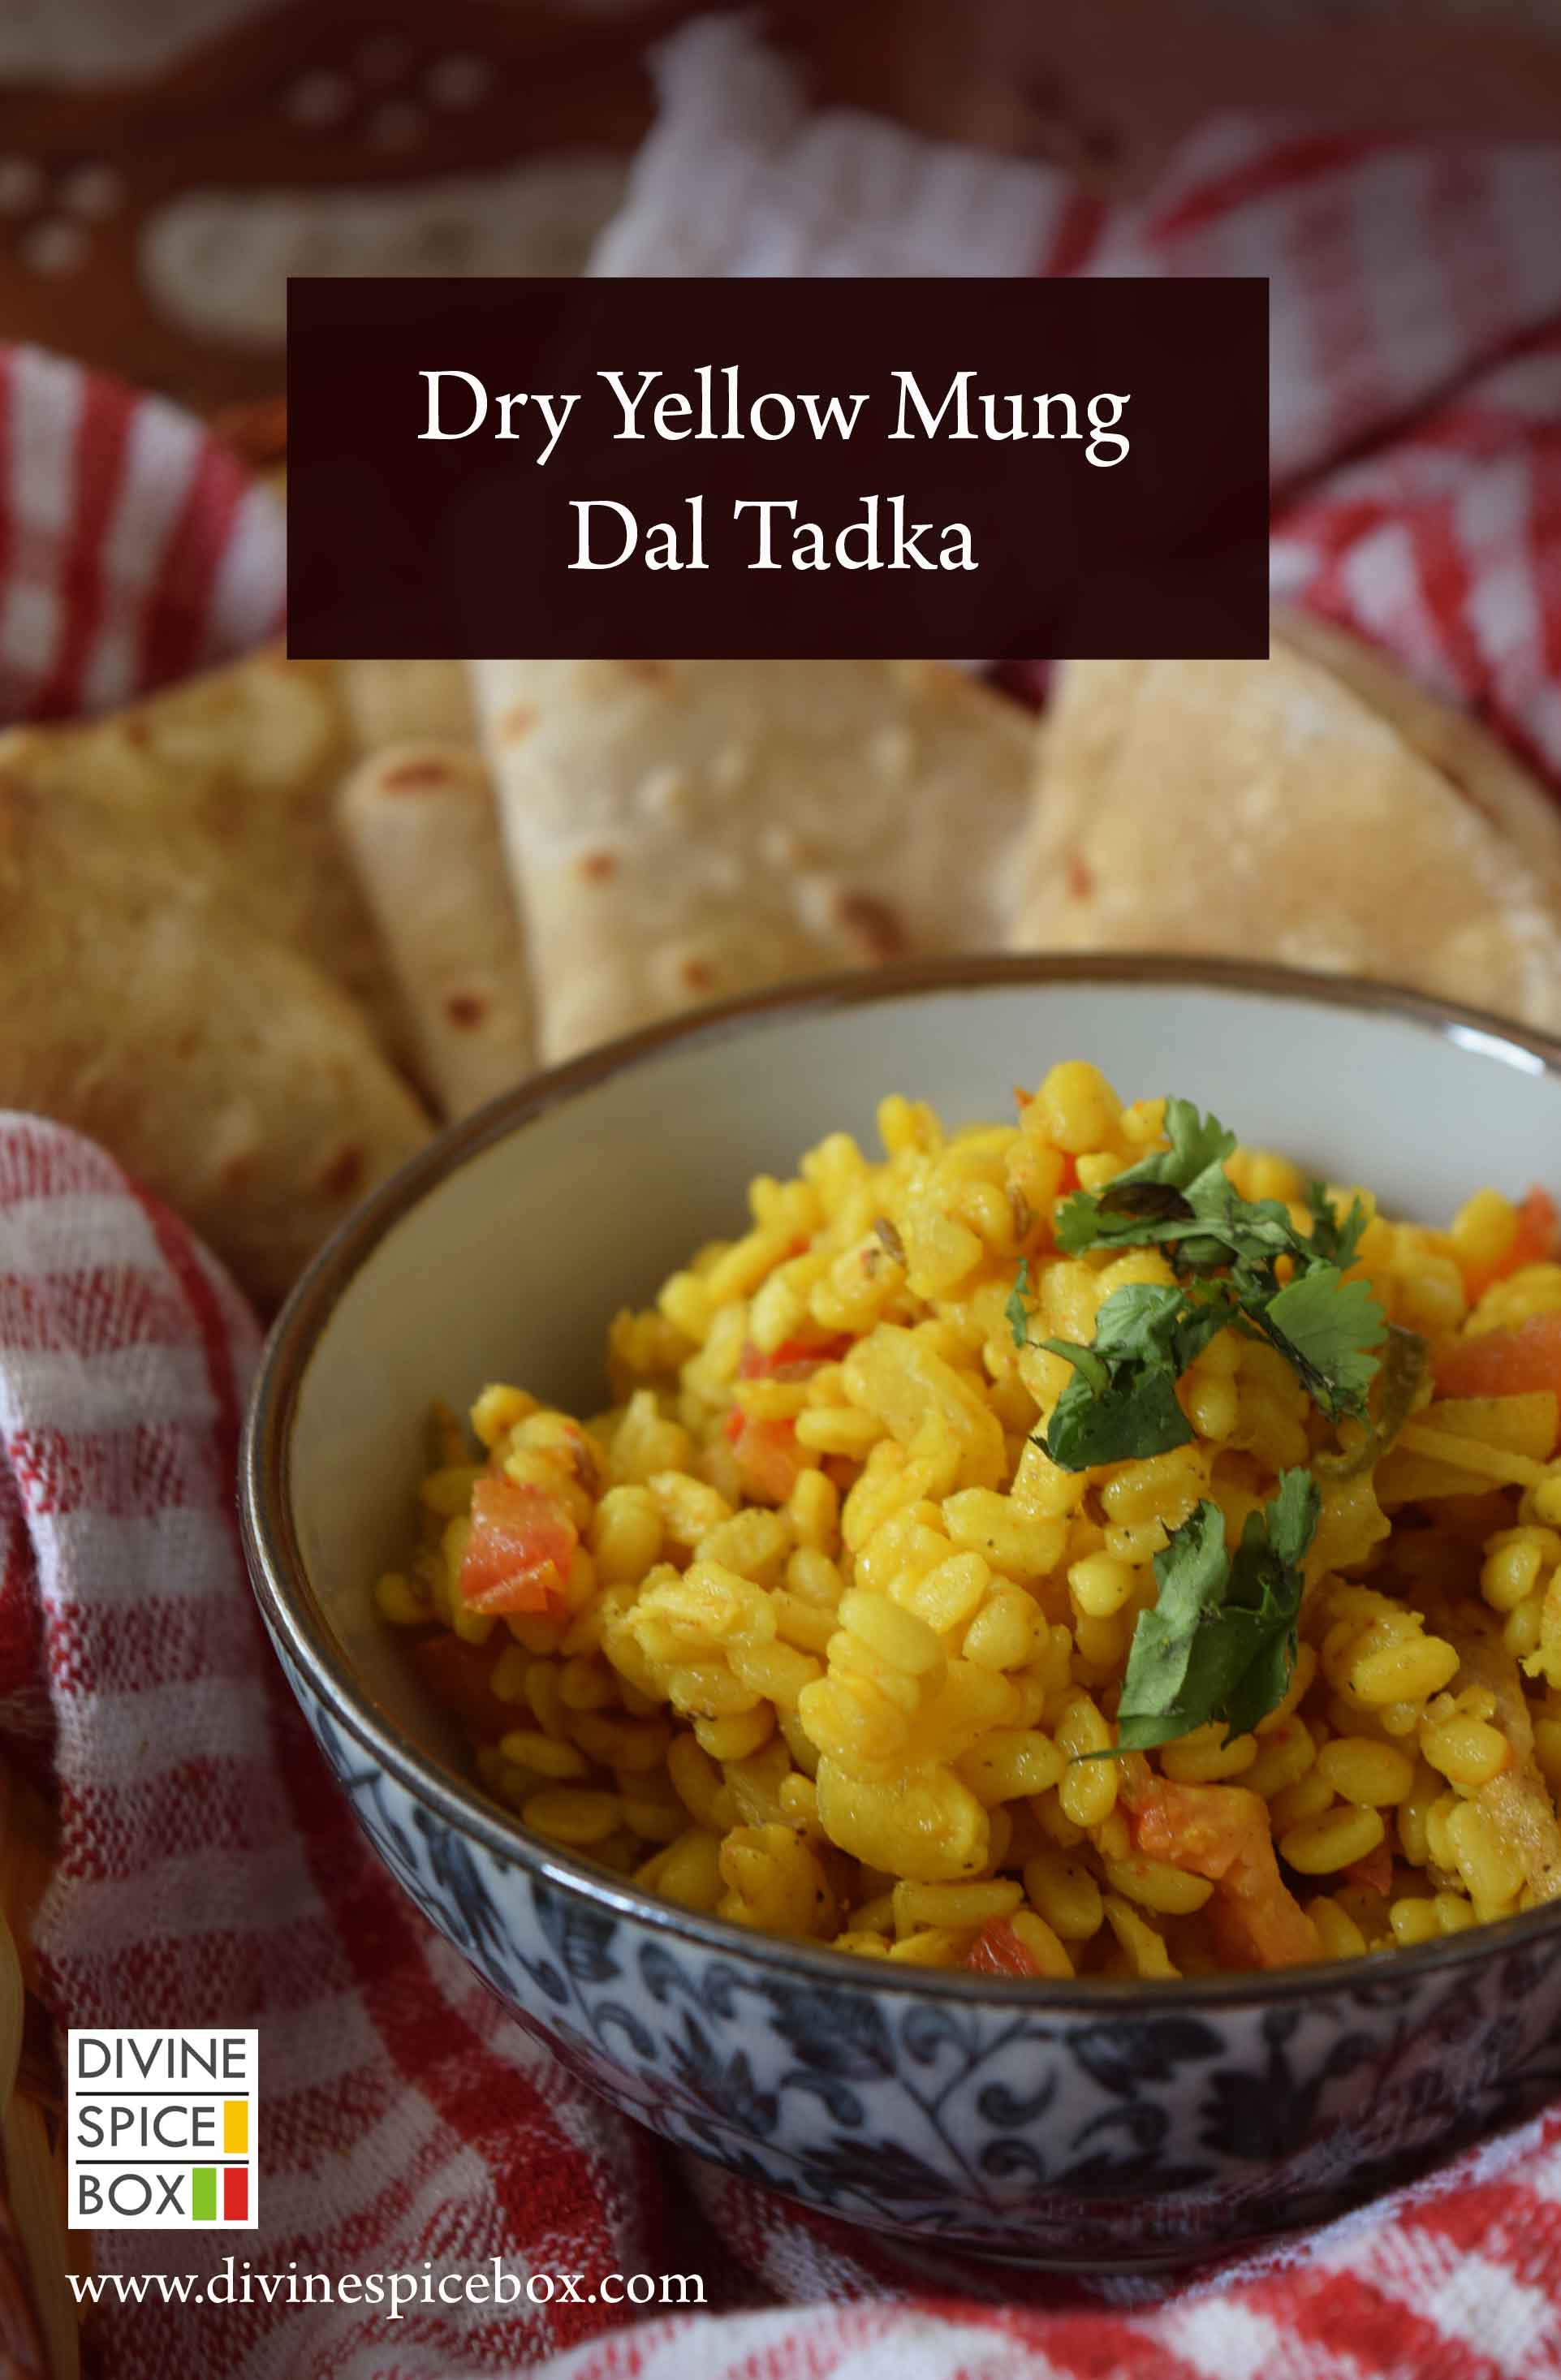 Dry Yellow Mung Dal Tadka